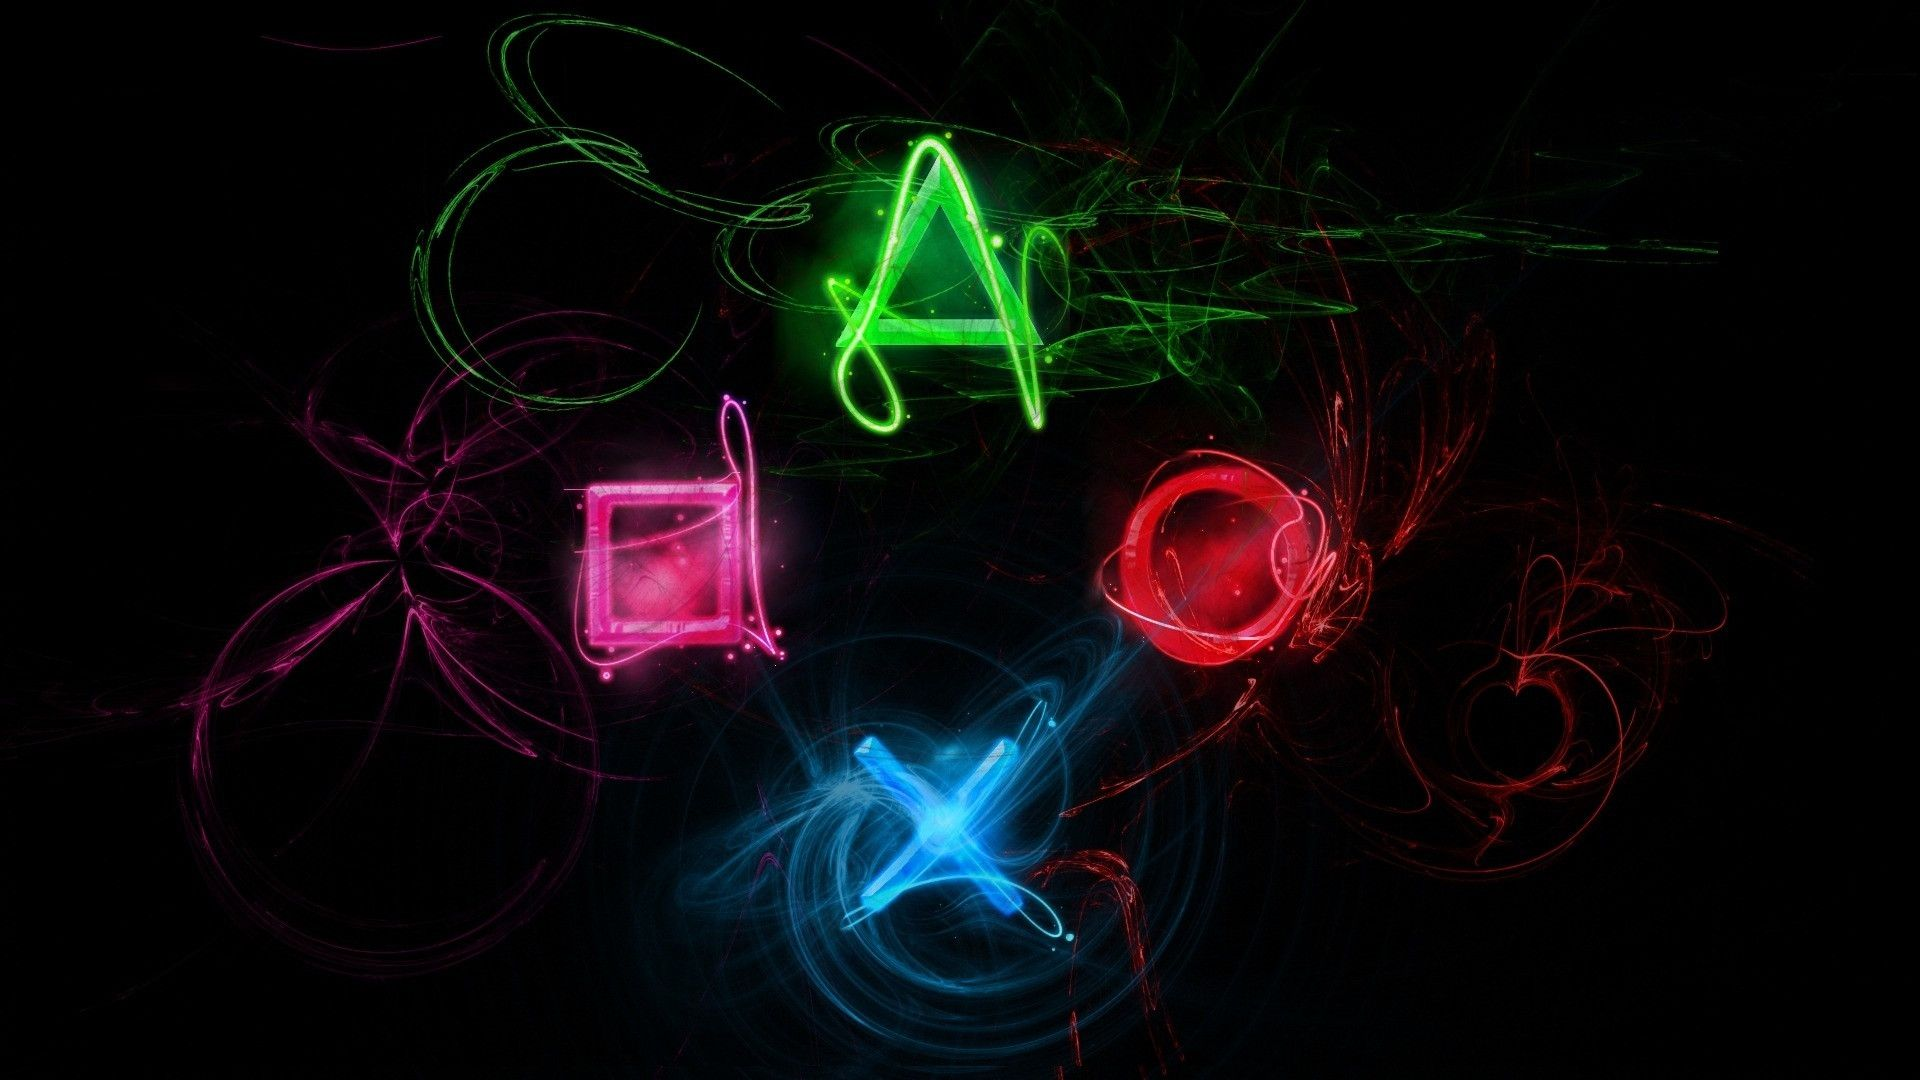 Ps3 Wallpaper HD